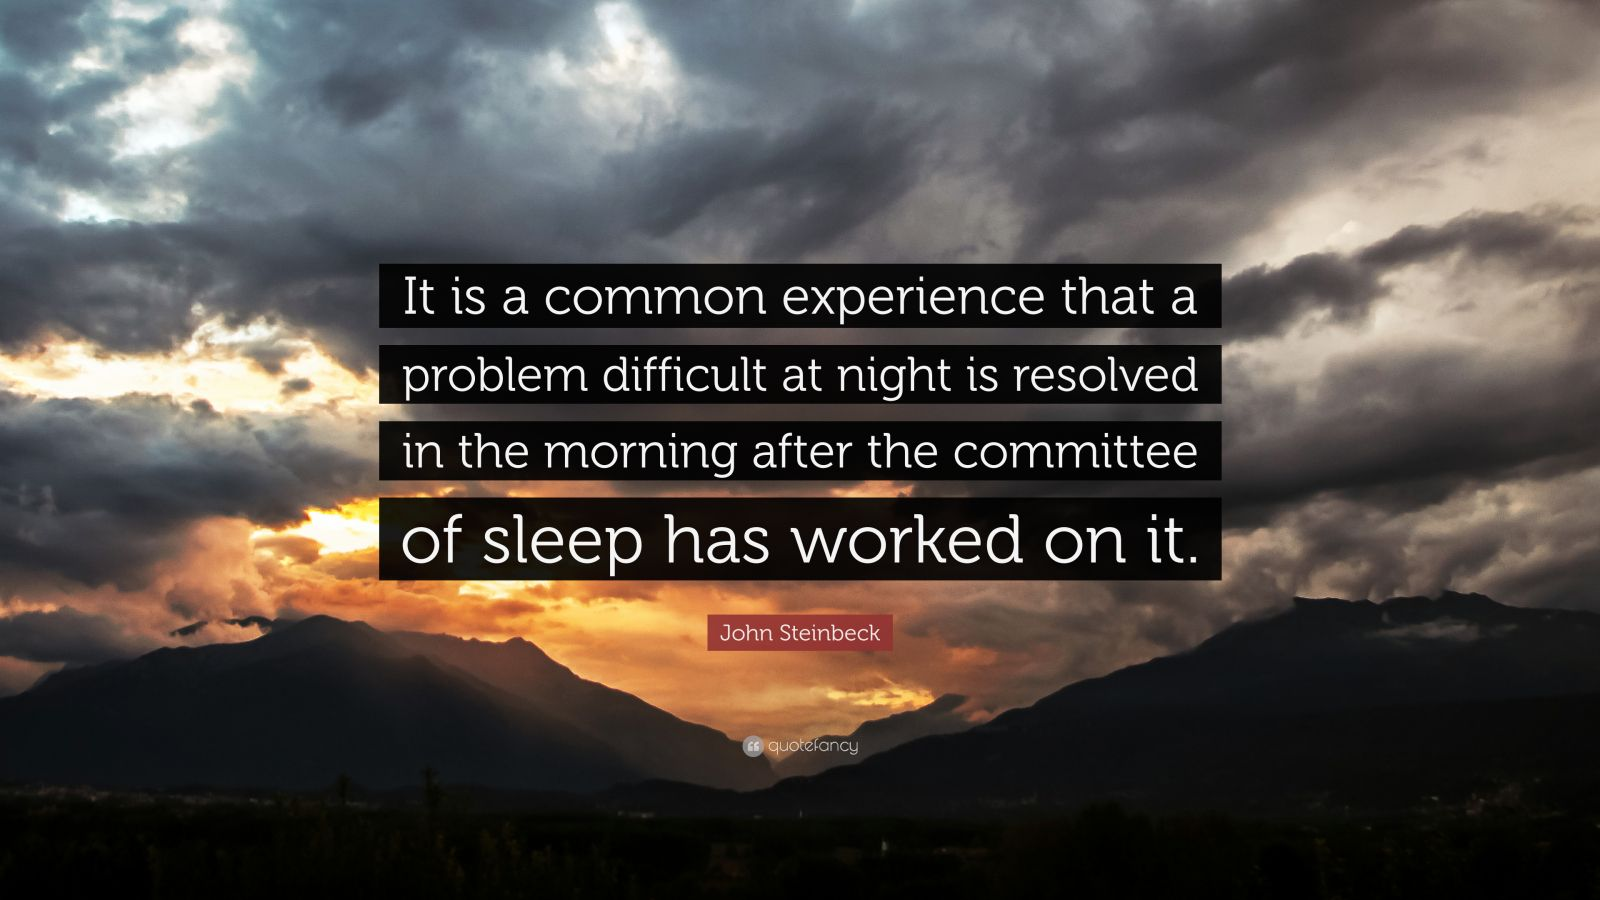 """John Steinbeck Quote: """"It is a common experience that a problem difficult at night is resolved in the morning after the committee of sleep has worked on it."""""""